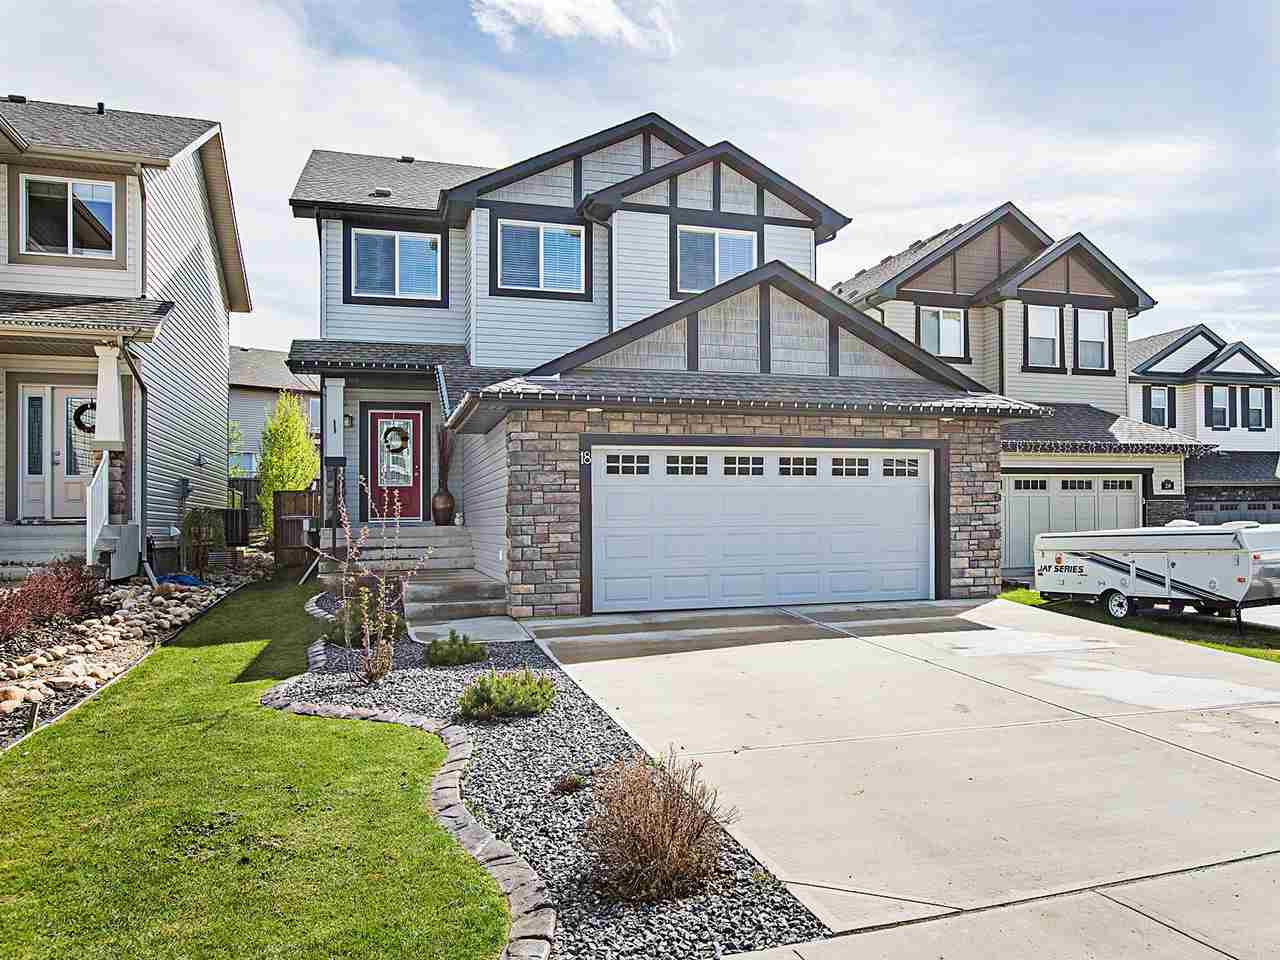 Main Photo: 18 CODETTE Way: Sherwood Park House for sale : MLS(r) # E4064318